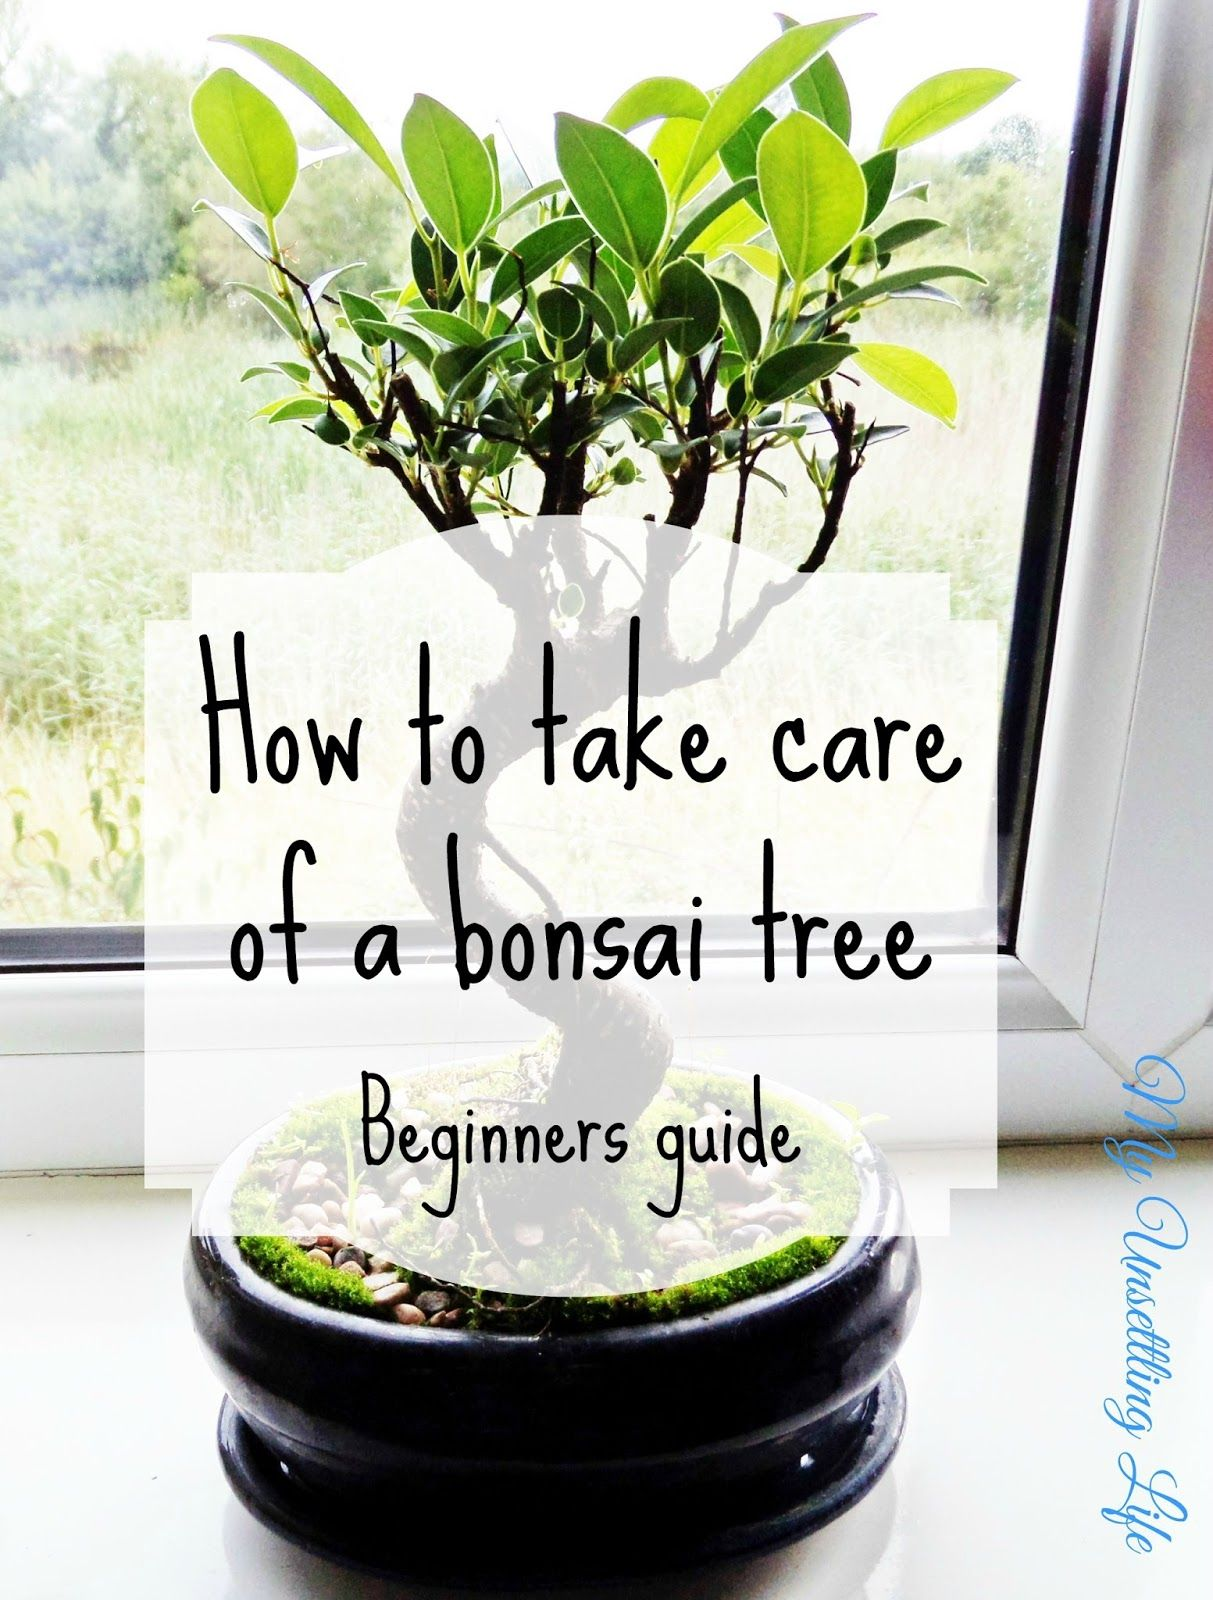 My Unsettling Life How to take care of a bonsai tree Beginners